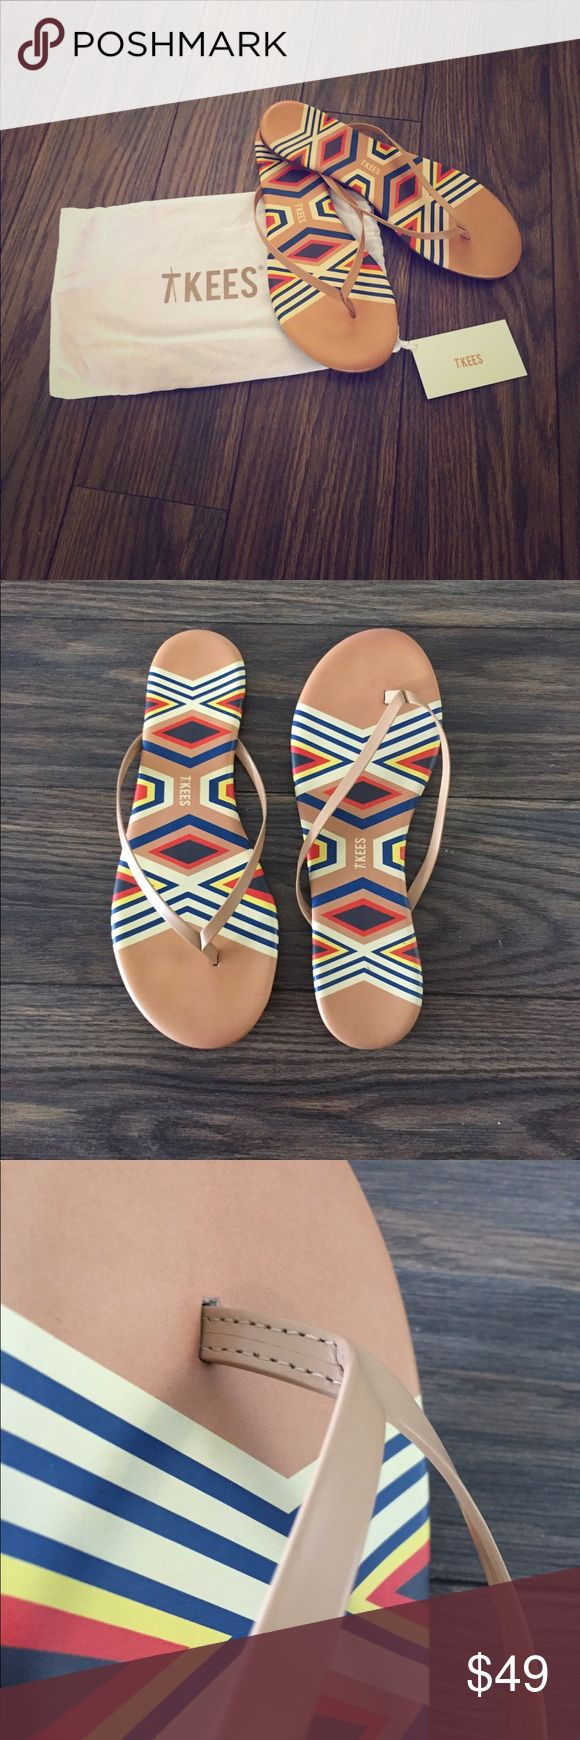 TKEES flip flops. In original packaging Bright geometric print on a warm camel brown leather base. Leather straps. Barely worn TKEES Shoes Sandals